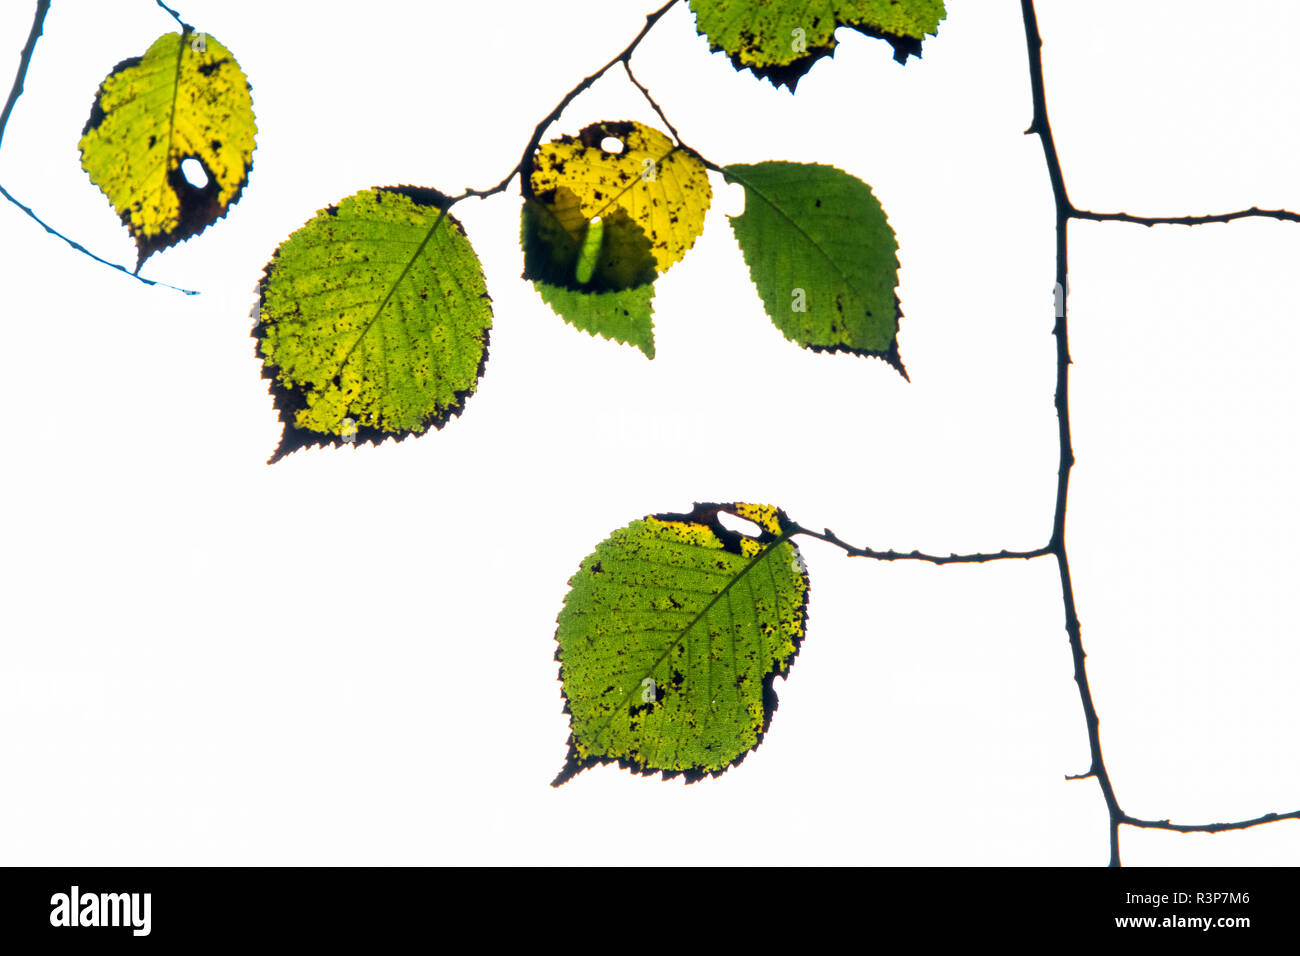 Birch Leaves (Betula sp) on a white background, Muniellos nature reserve, Asturias, Spain - Stock Image